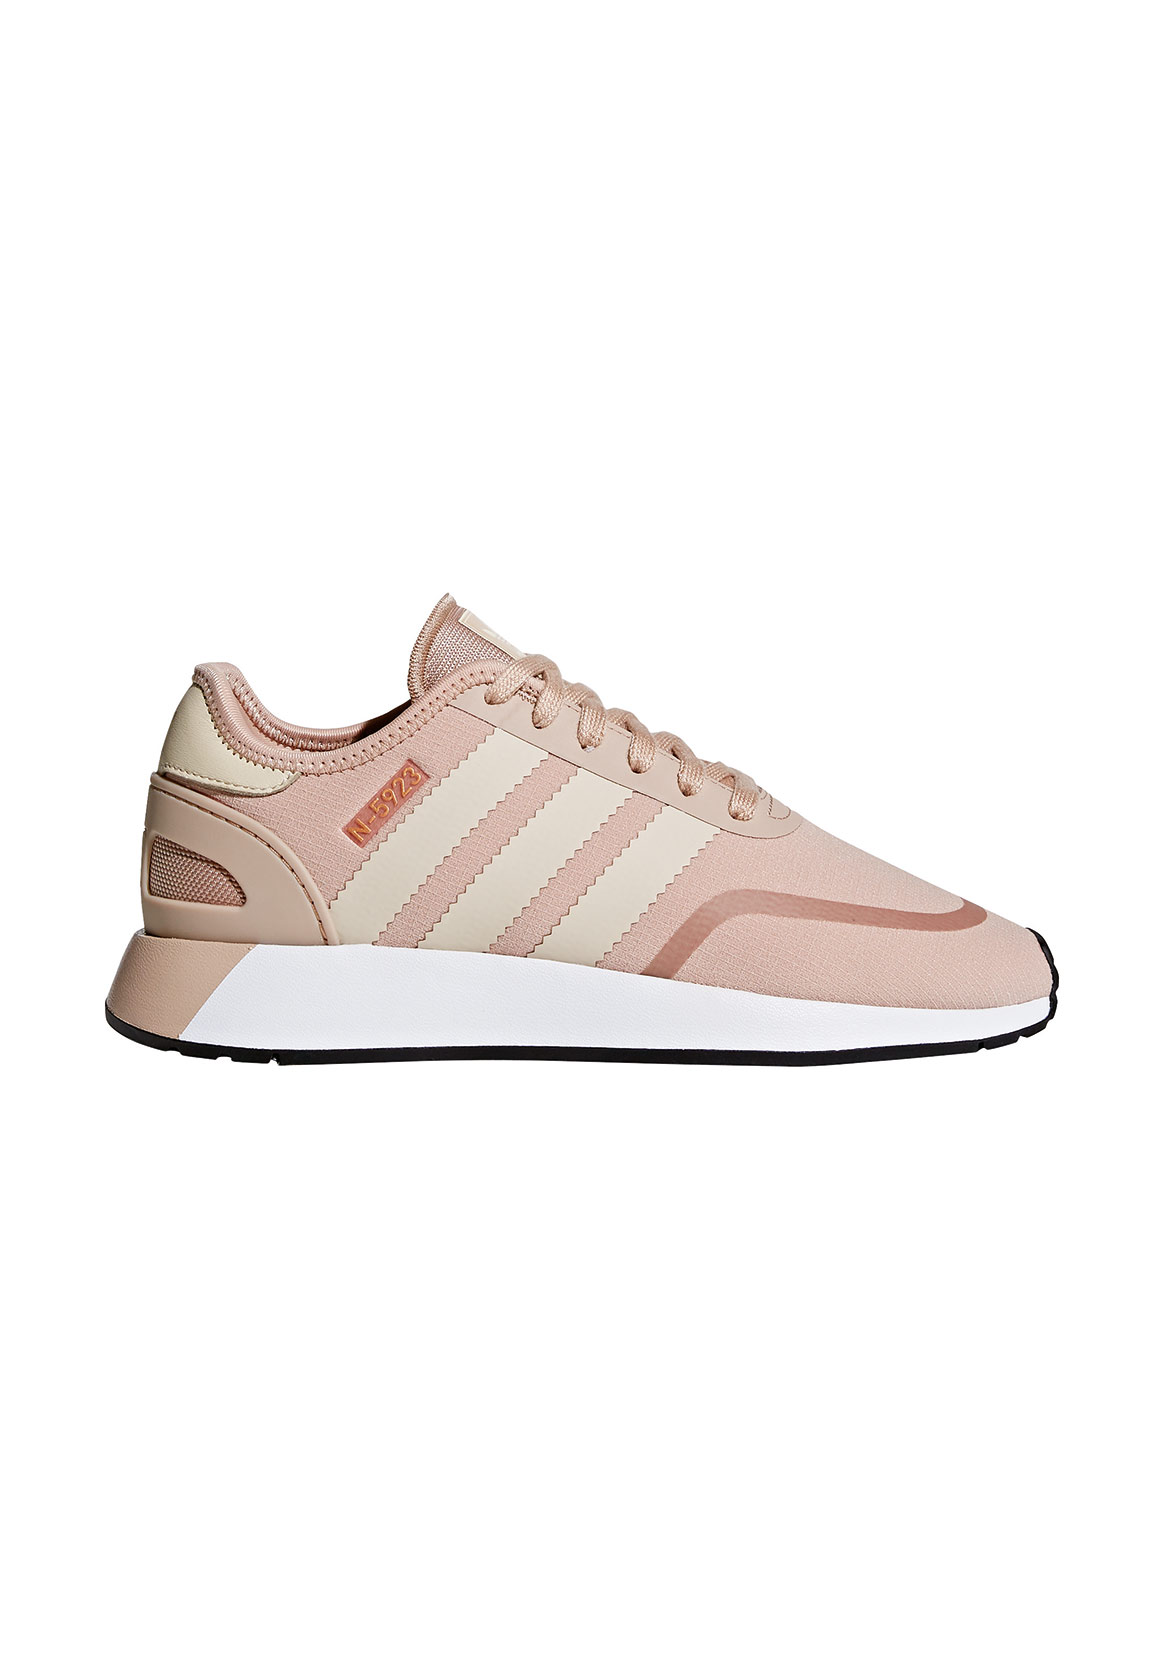 new high official beauty where to buy adidas sneaker rosa a43e5 719cd